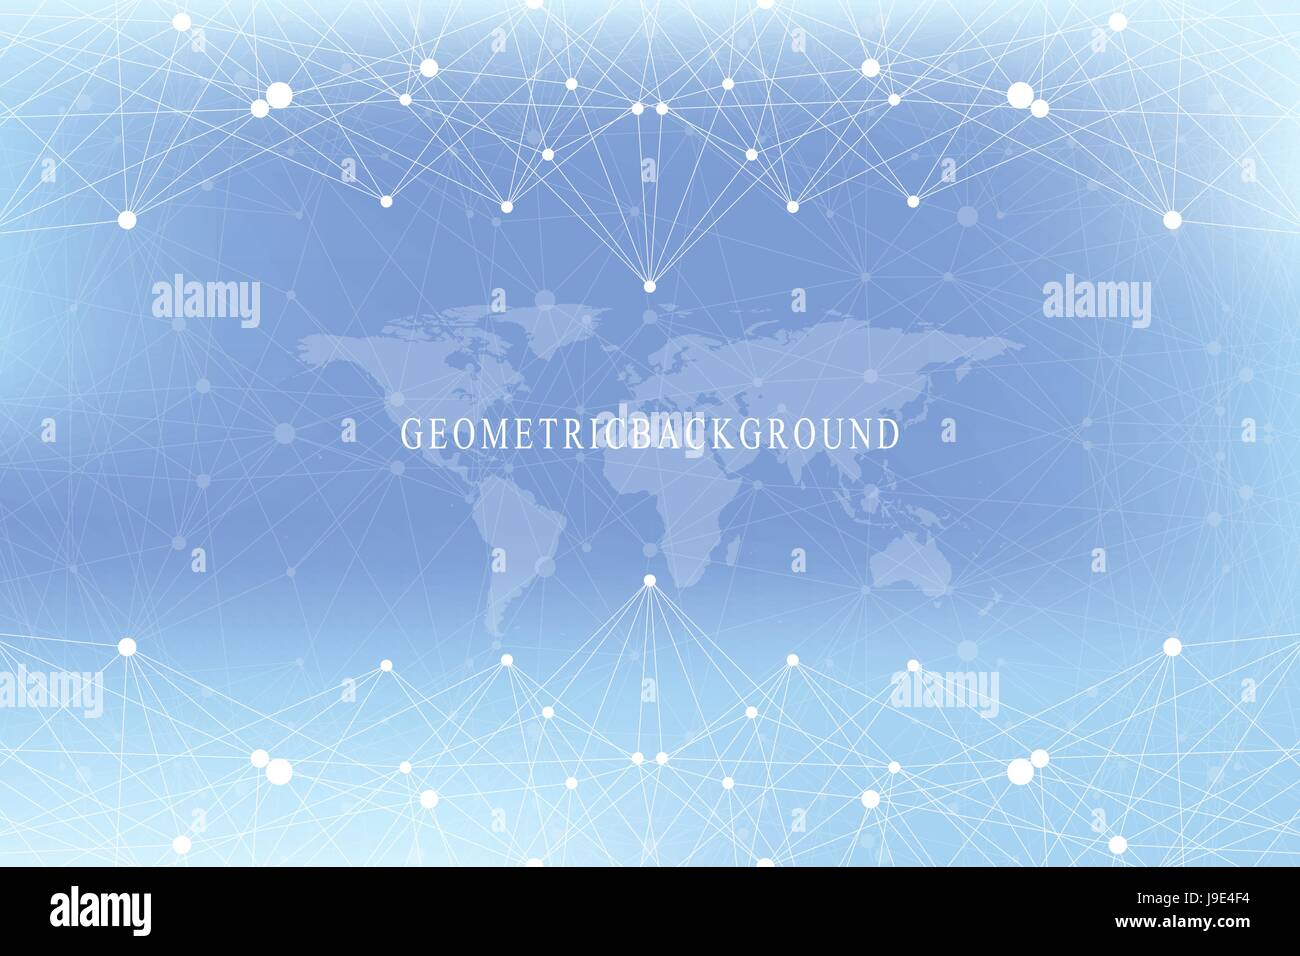 Graphic abstract background communication with world map big data graphic abstract background communication with world map big data visualization perspective backdrop with connected gumiabroncs Choice Image